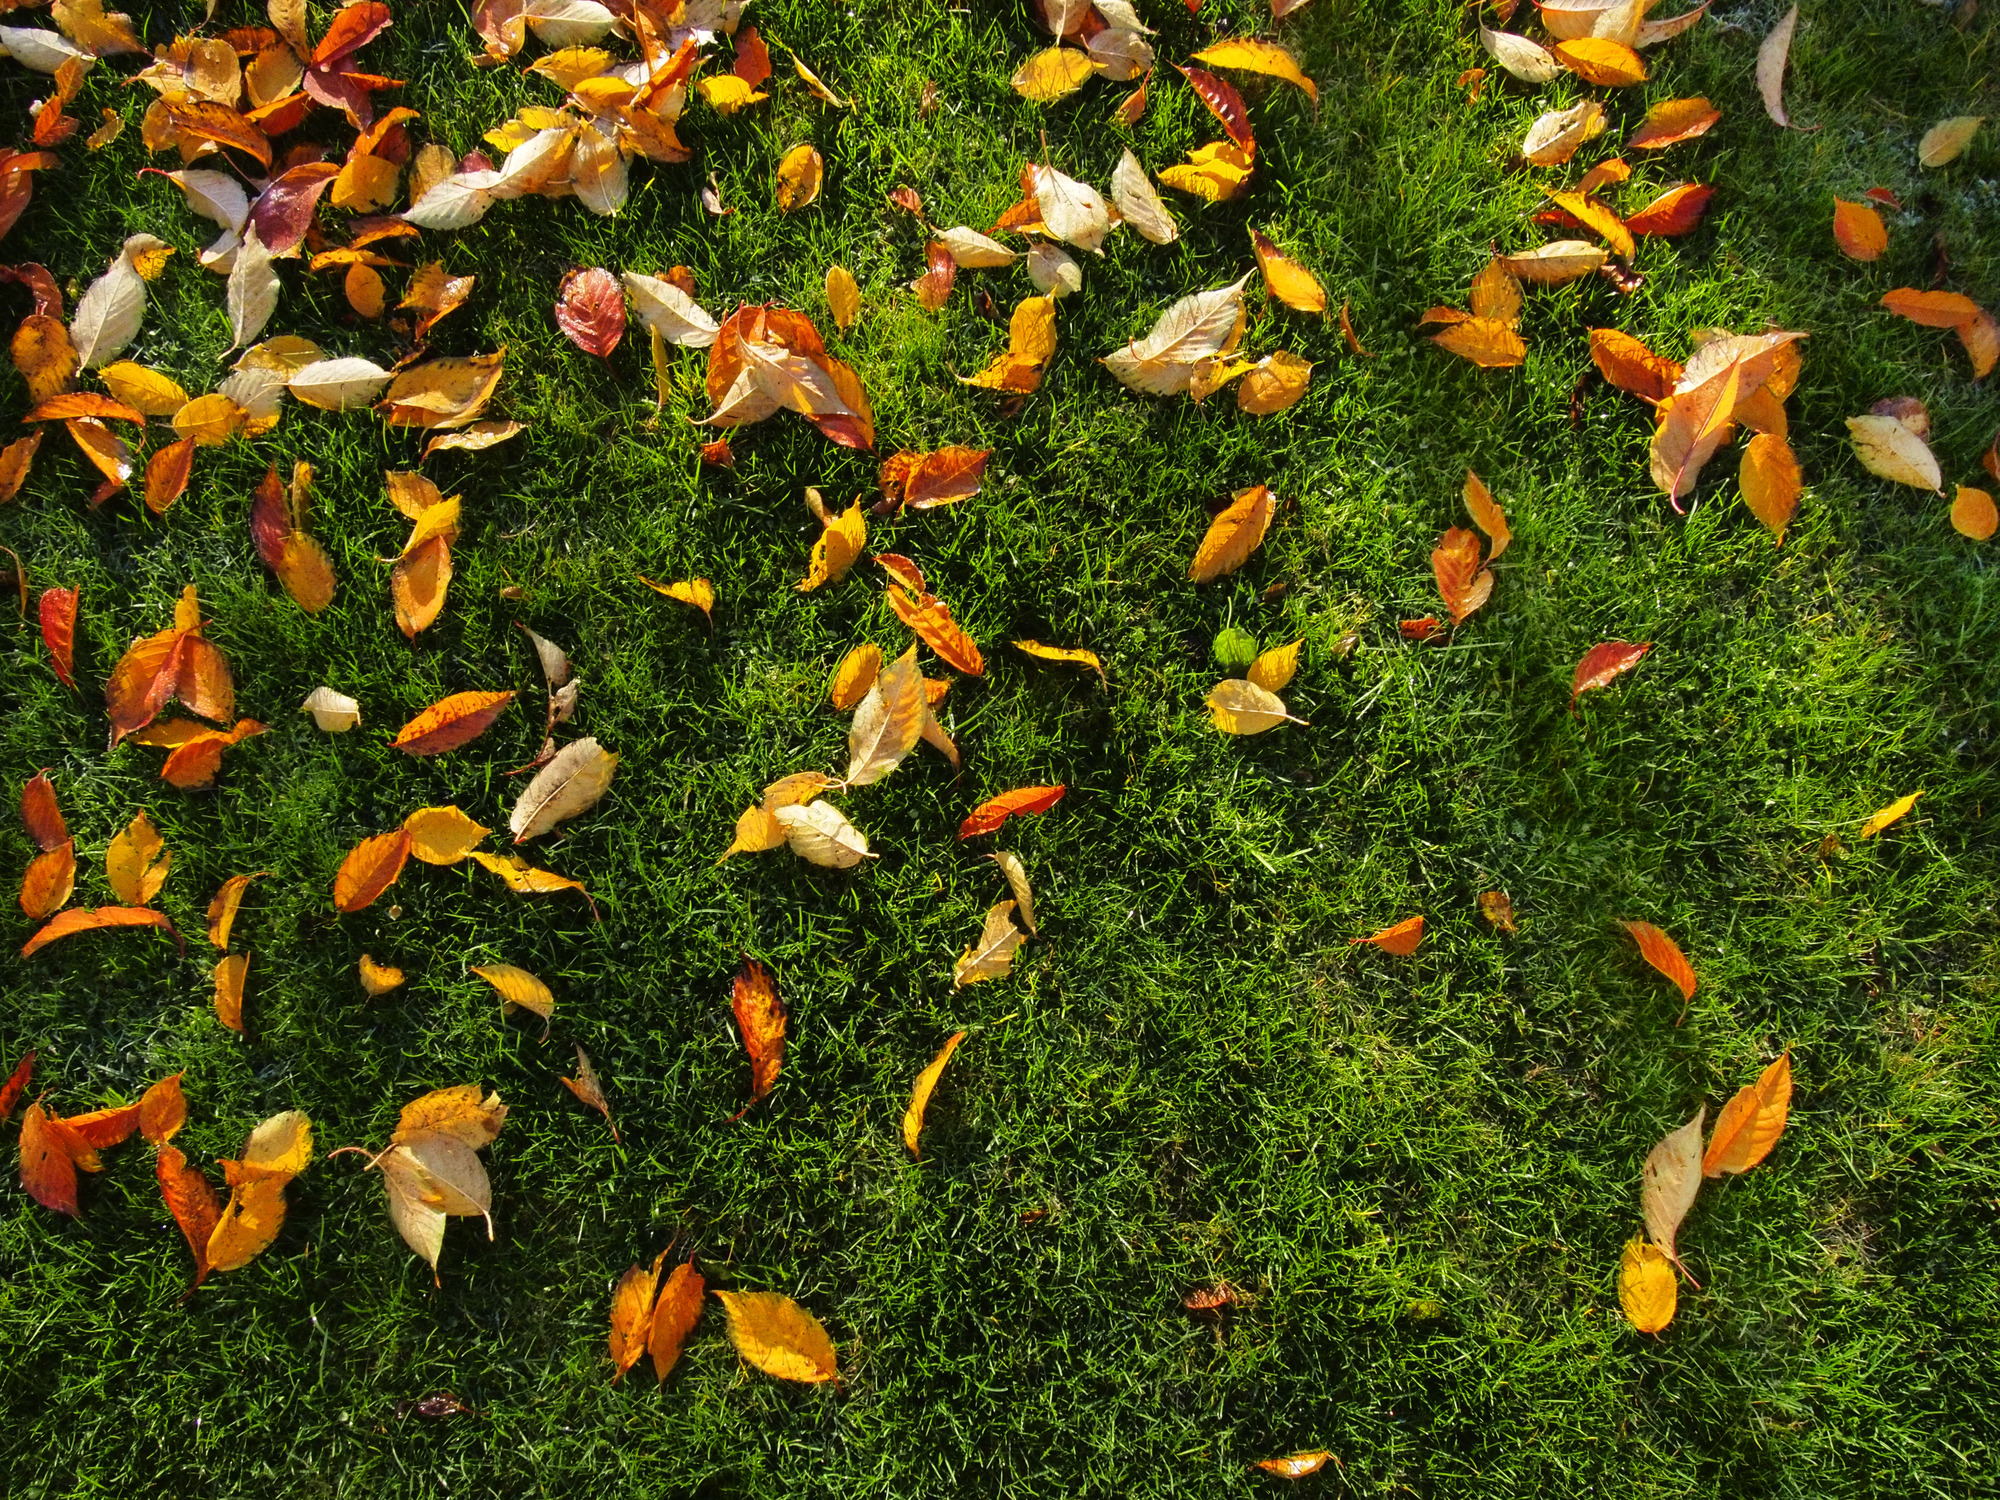 Prepare your lawn for winter this fall.